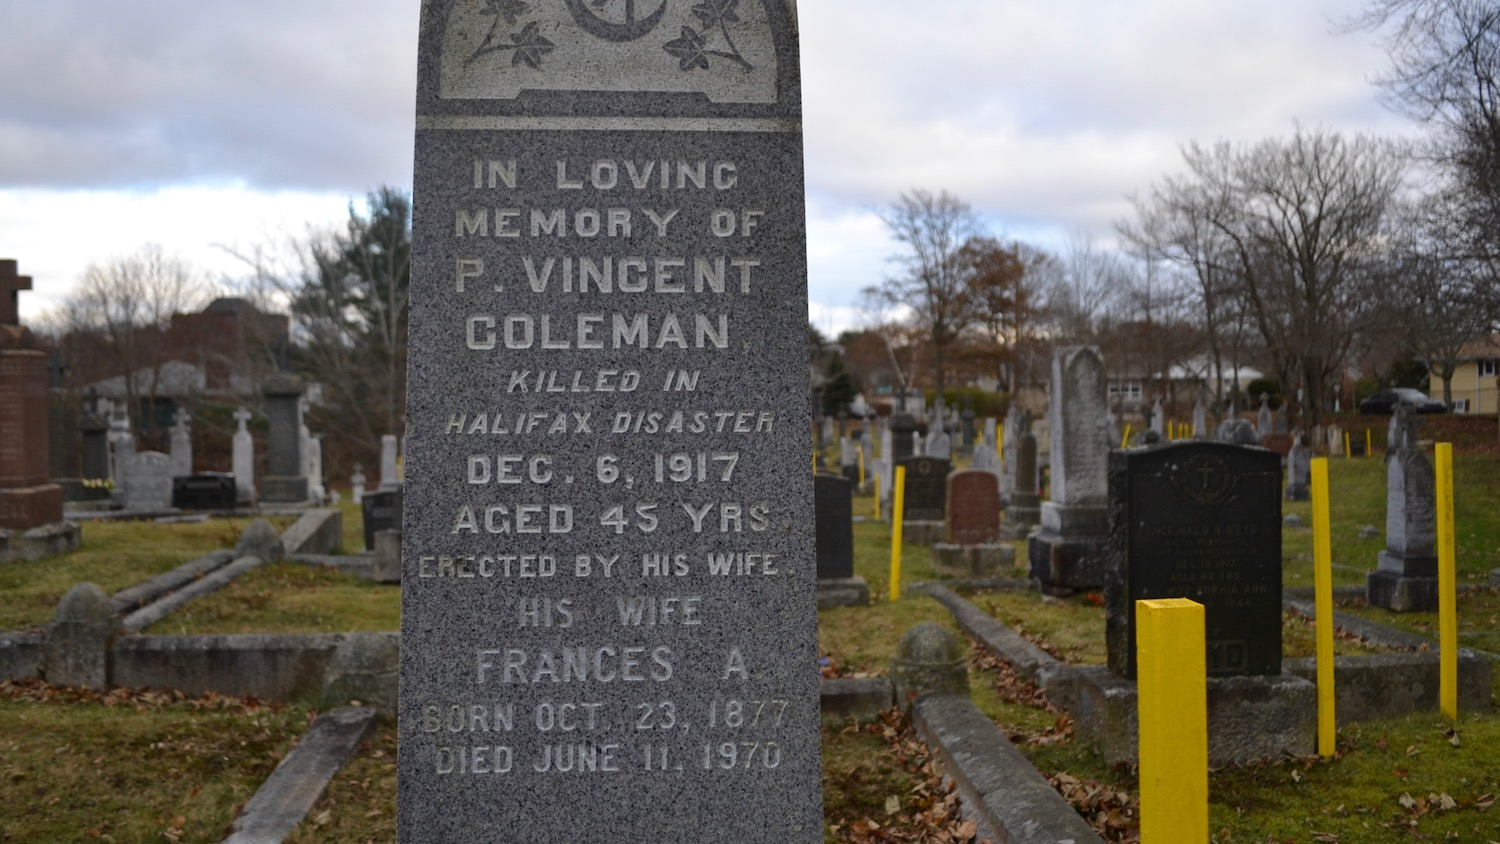 The grave of Vincent Coleman, a victim of the Halifax Explosion.